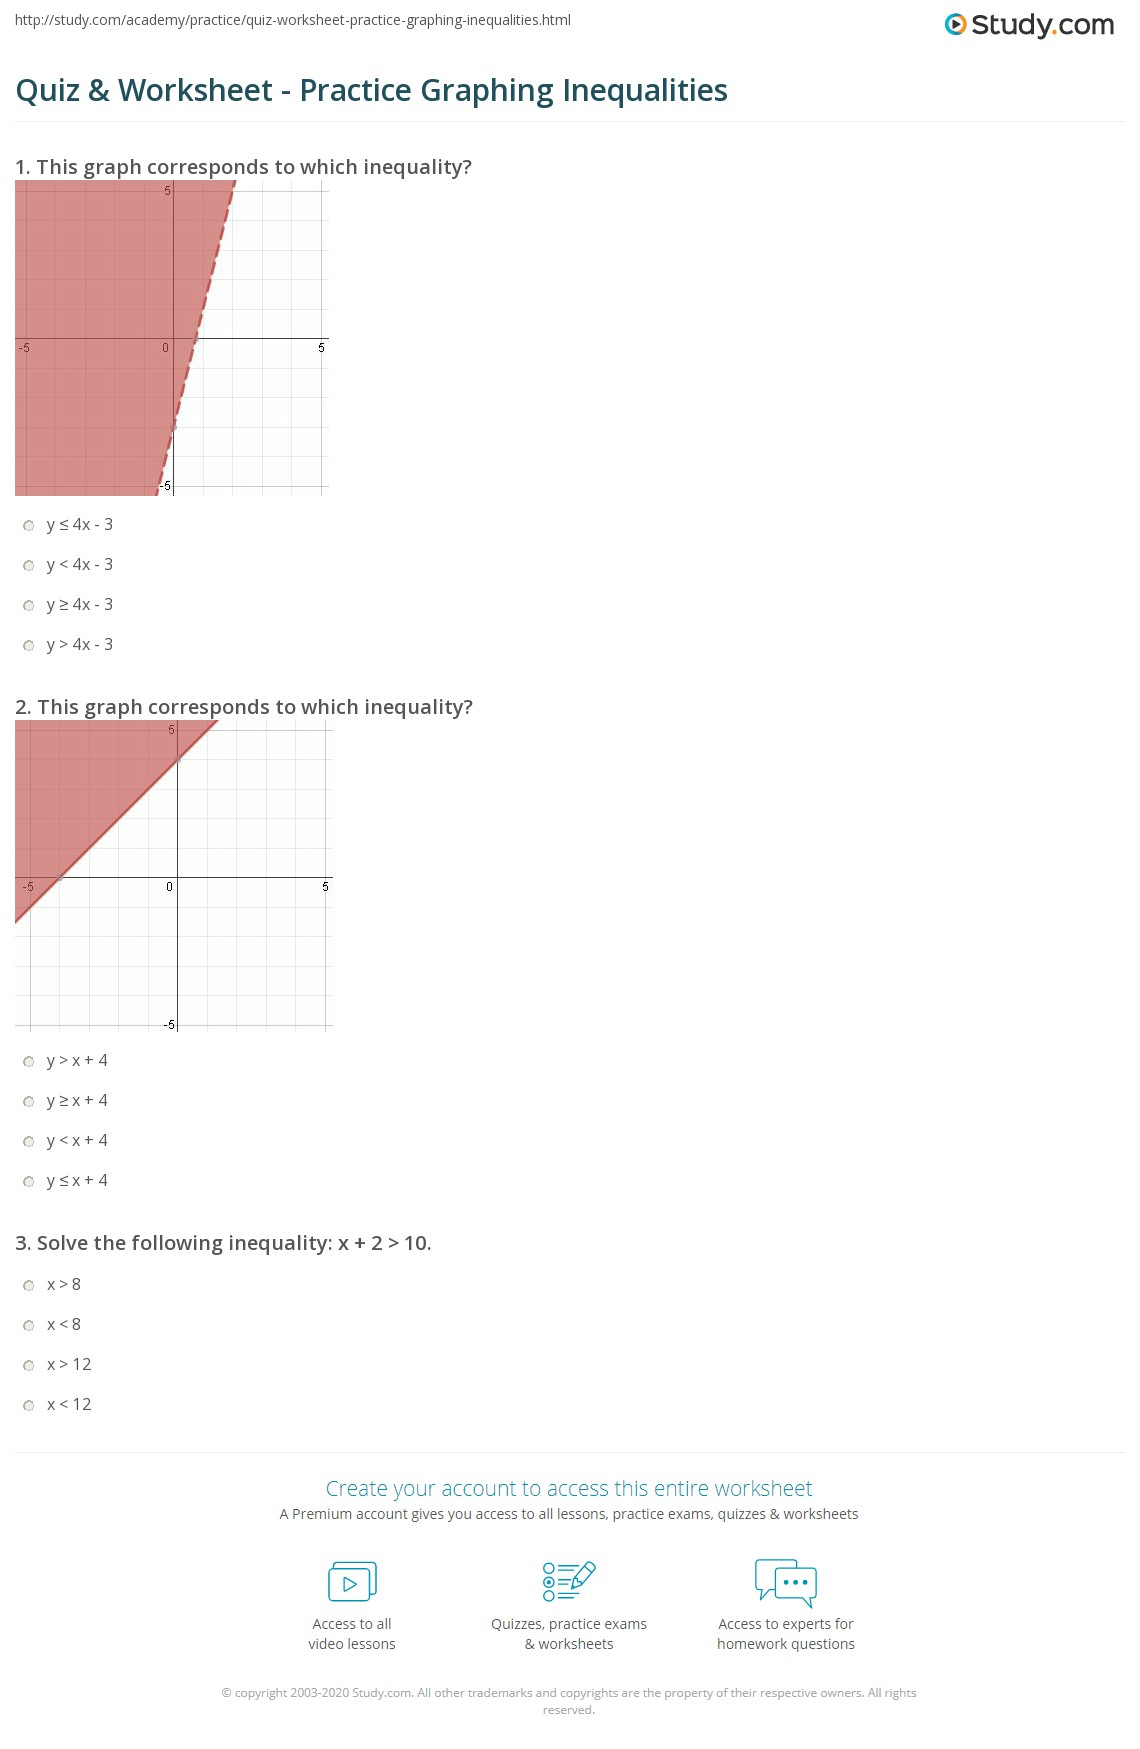 Quiz & Worksheet - Practice Graphing Inequalities | Study.com